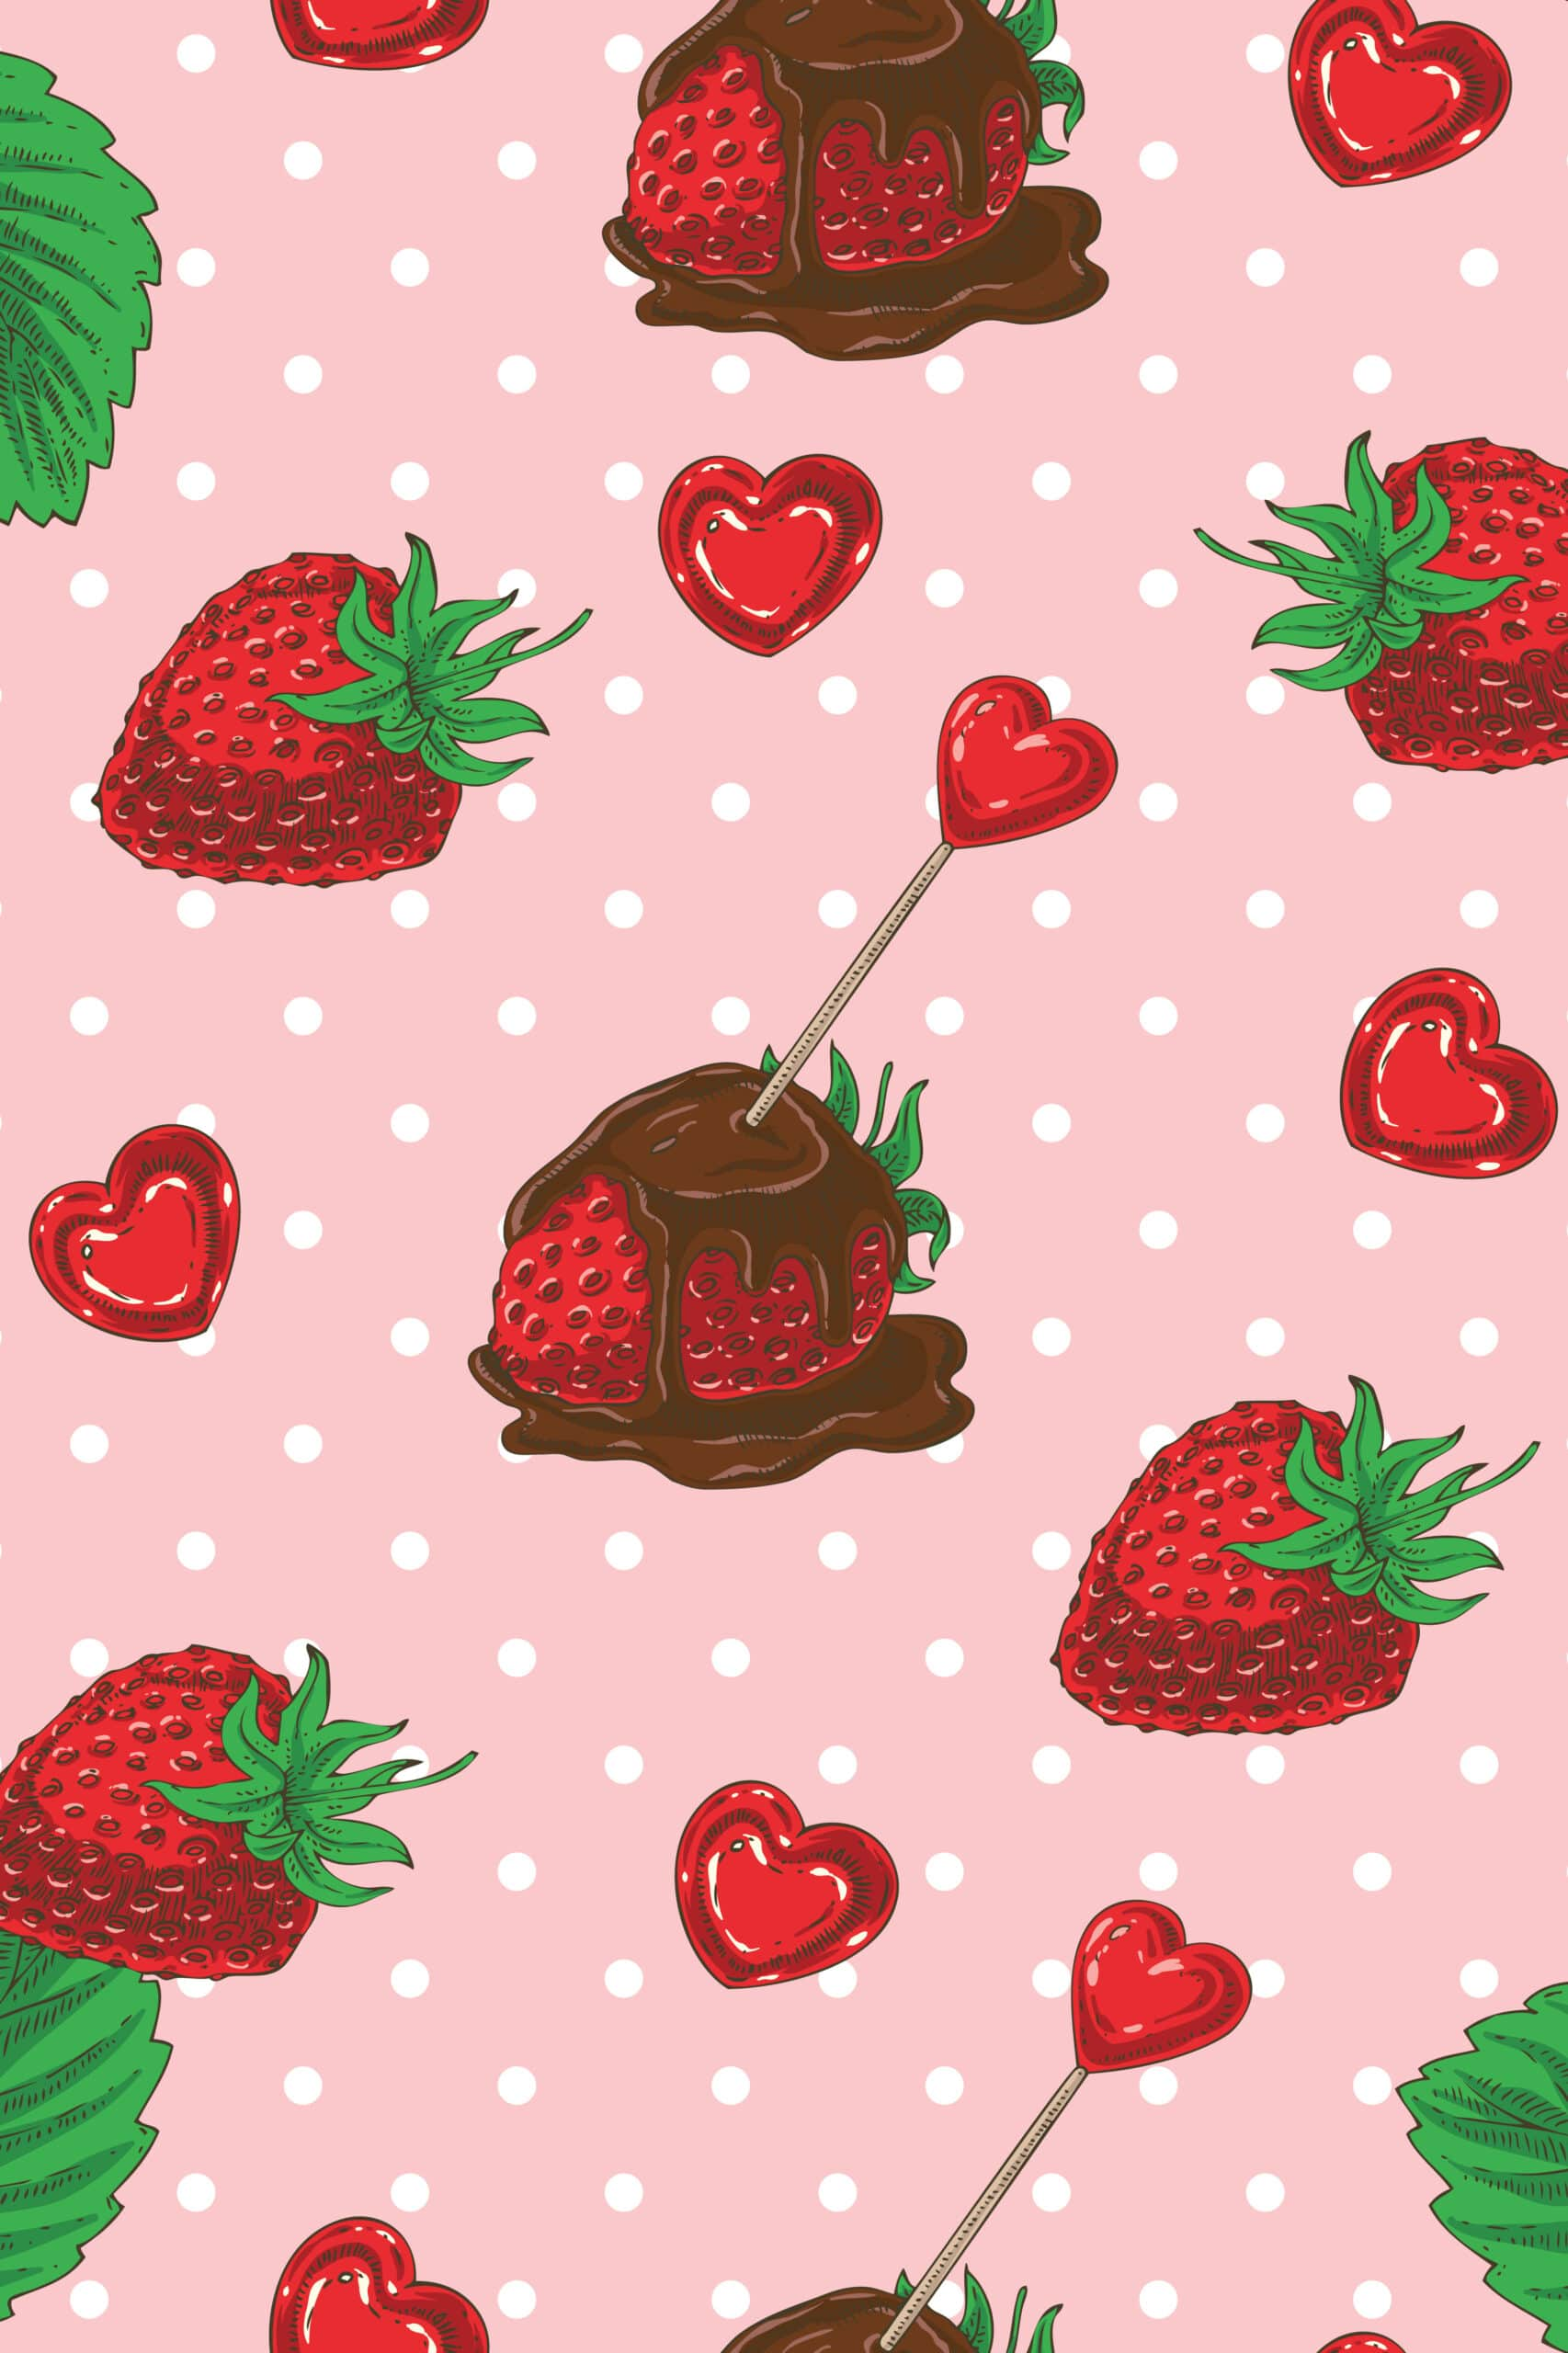 Choclates strawberies are the best Valentine's Day wallpaper for iPhone